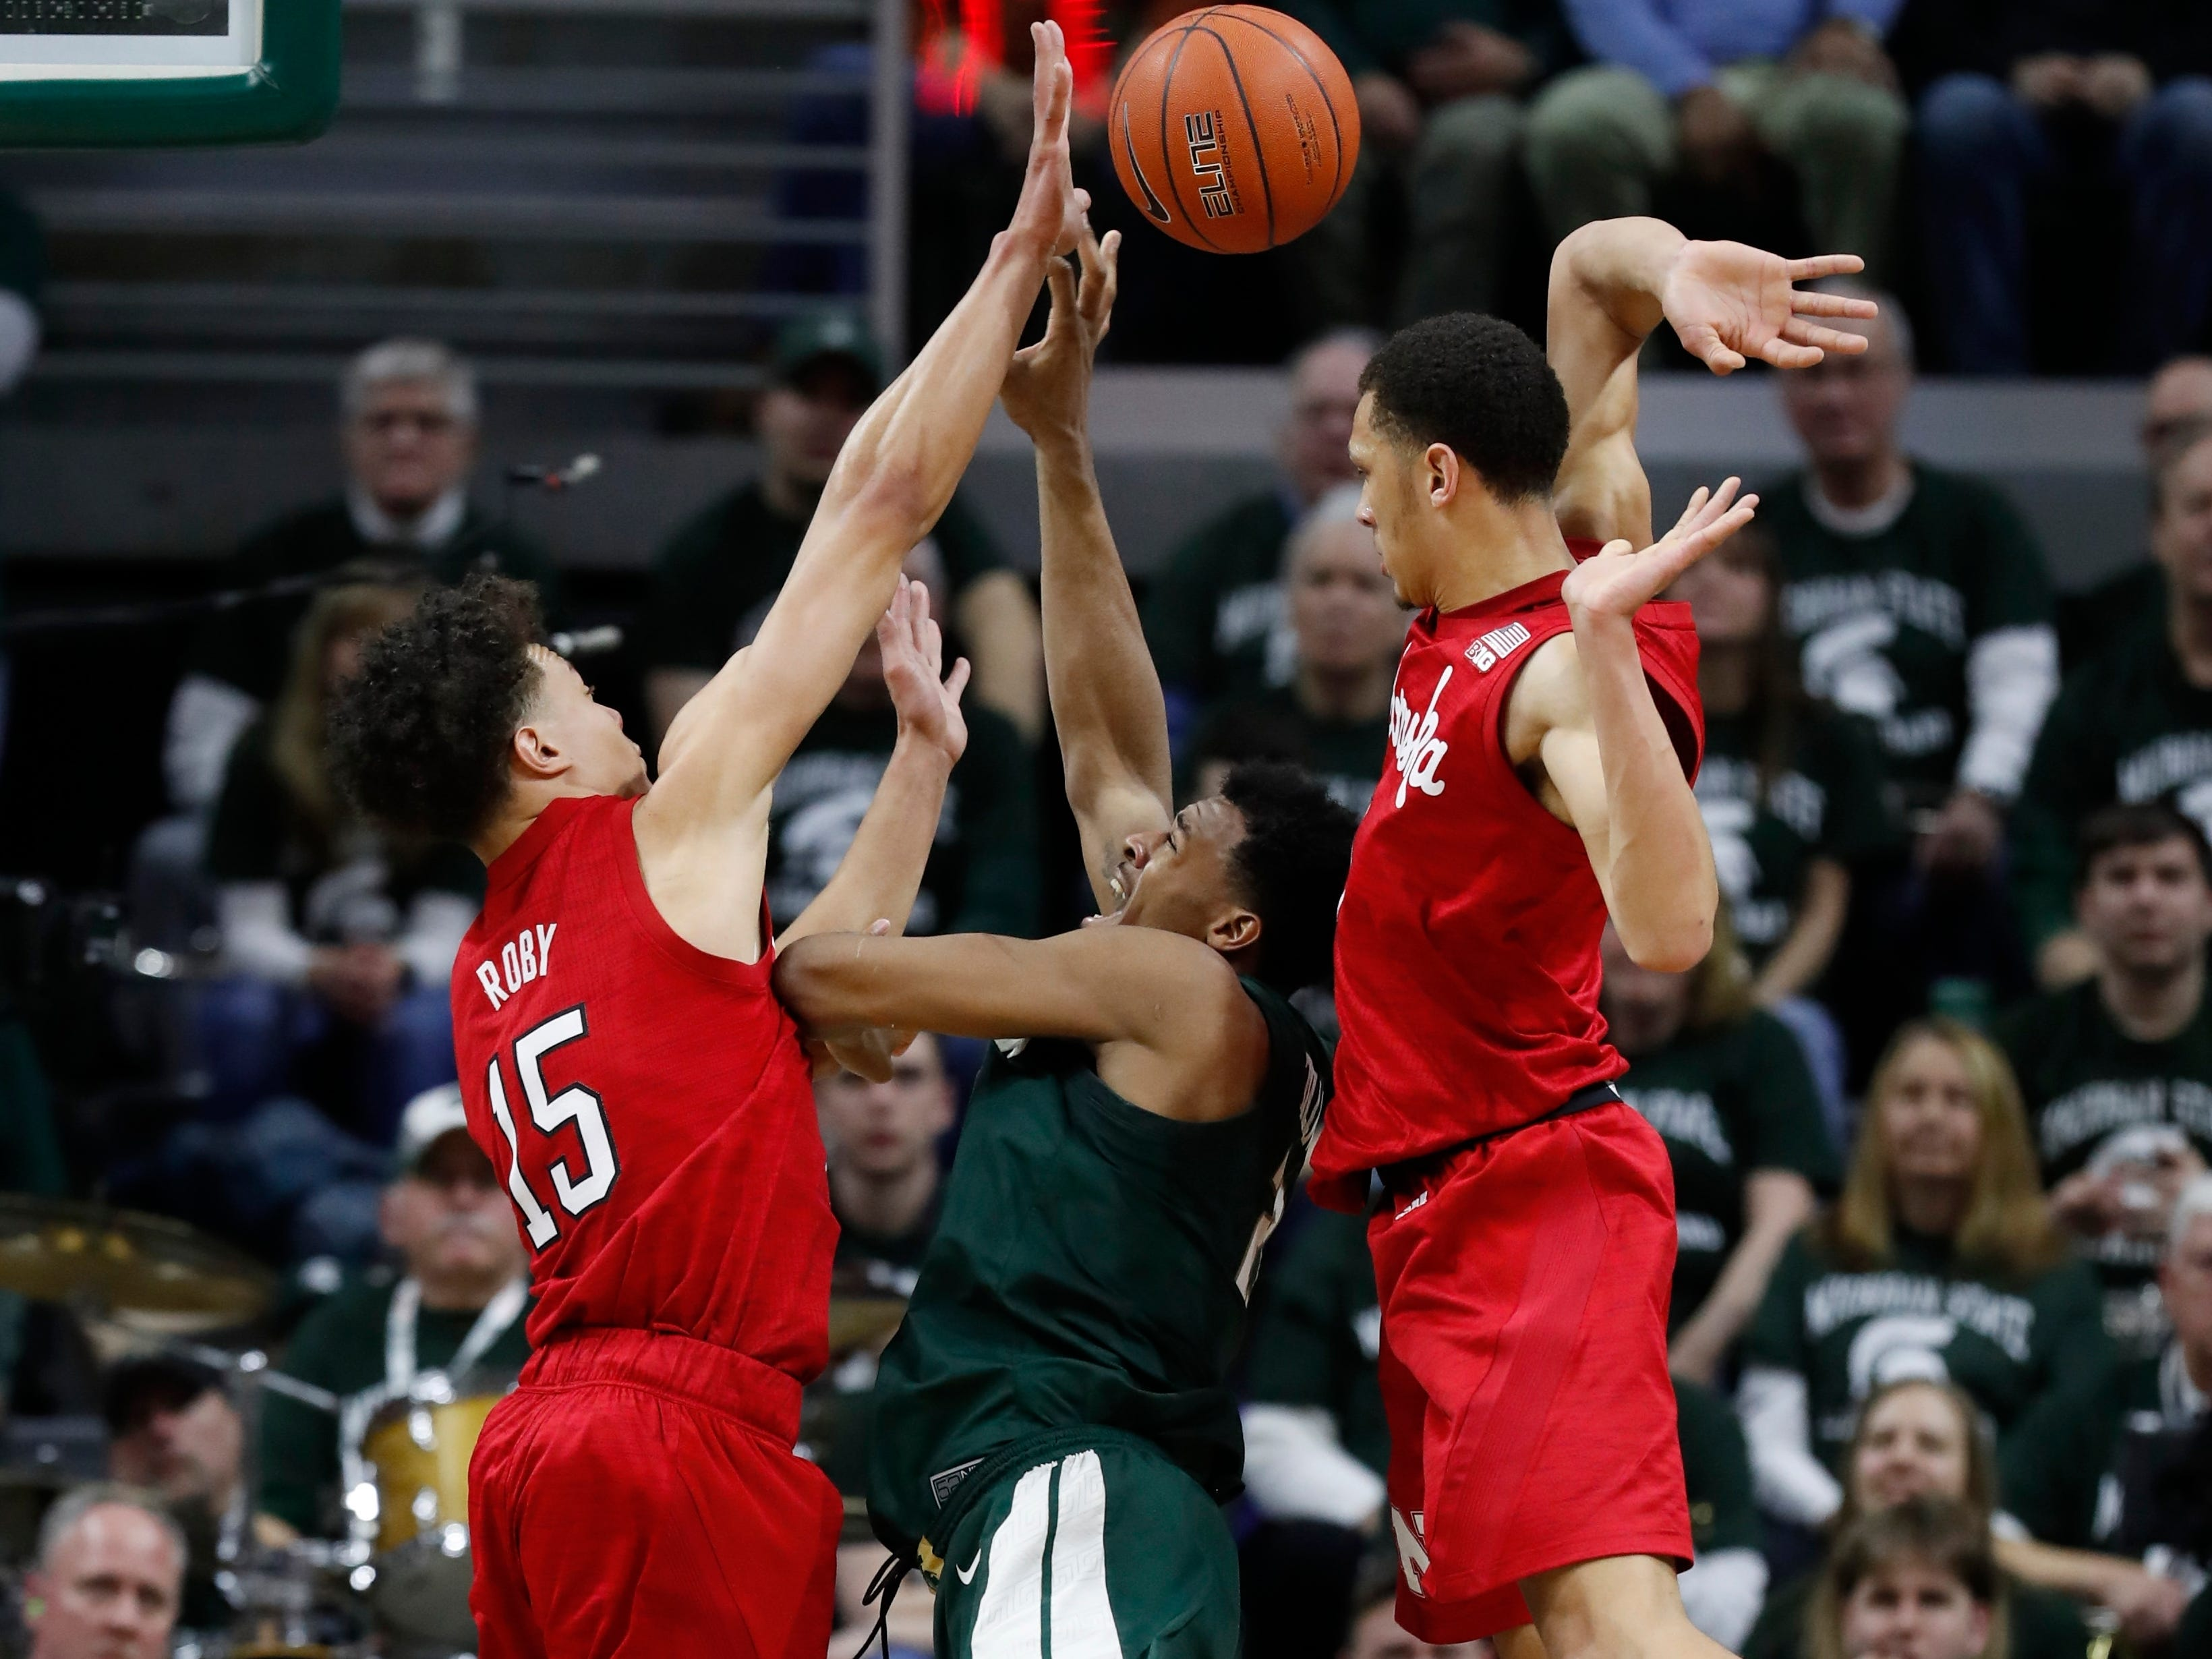 Michigan State forward Xavier Tillman, center, attempts a shot as Nebraska defenders Isaiah Roby, left, and Amir Harris, right, converge on him during the first half of an NCAA college basketball game, Tuesday, March 5, 2019.